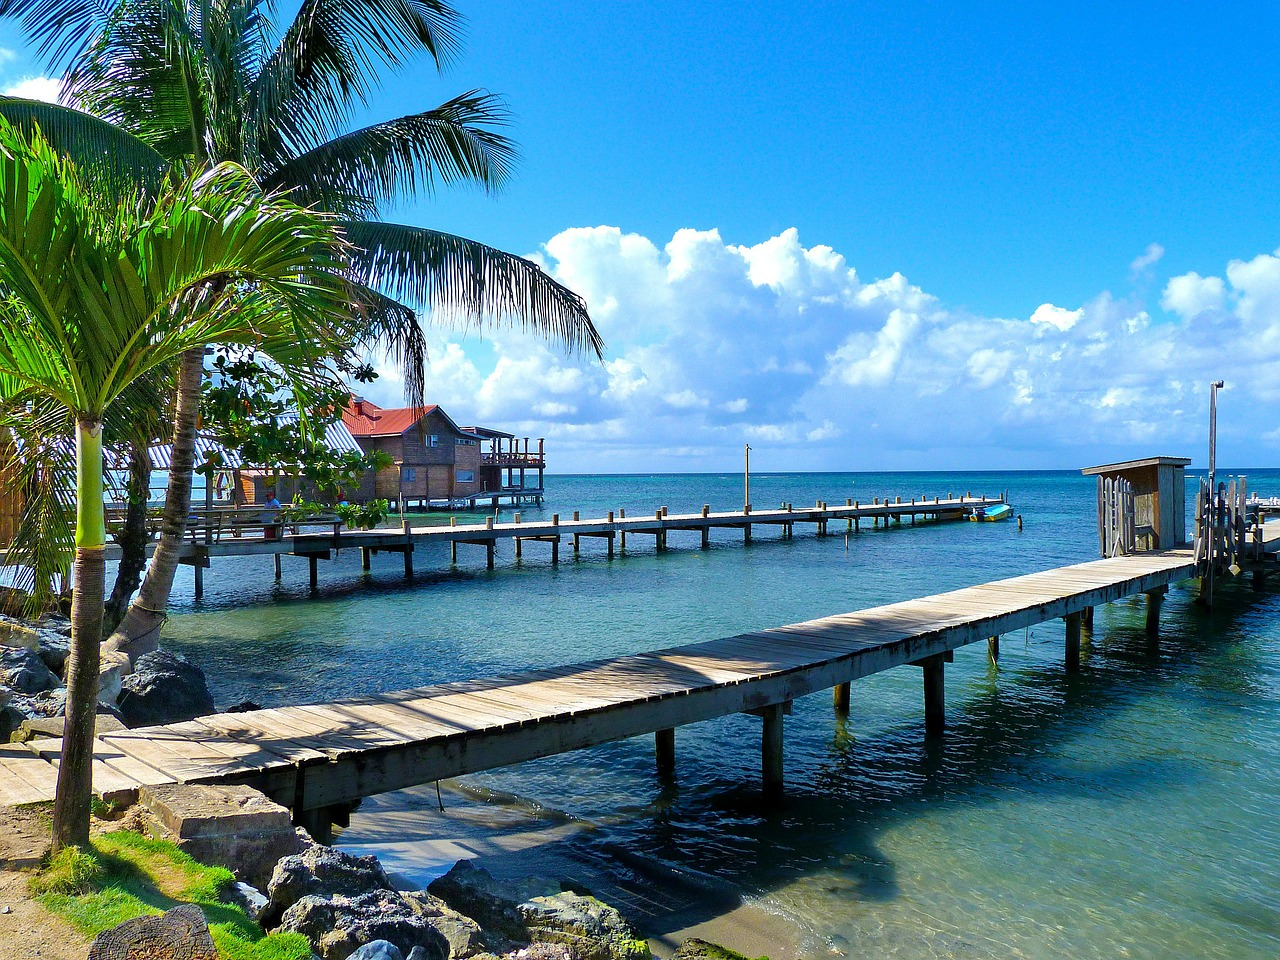 House on an ocean dock in Honduras.